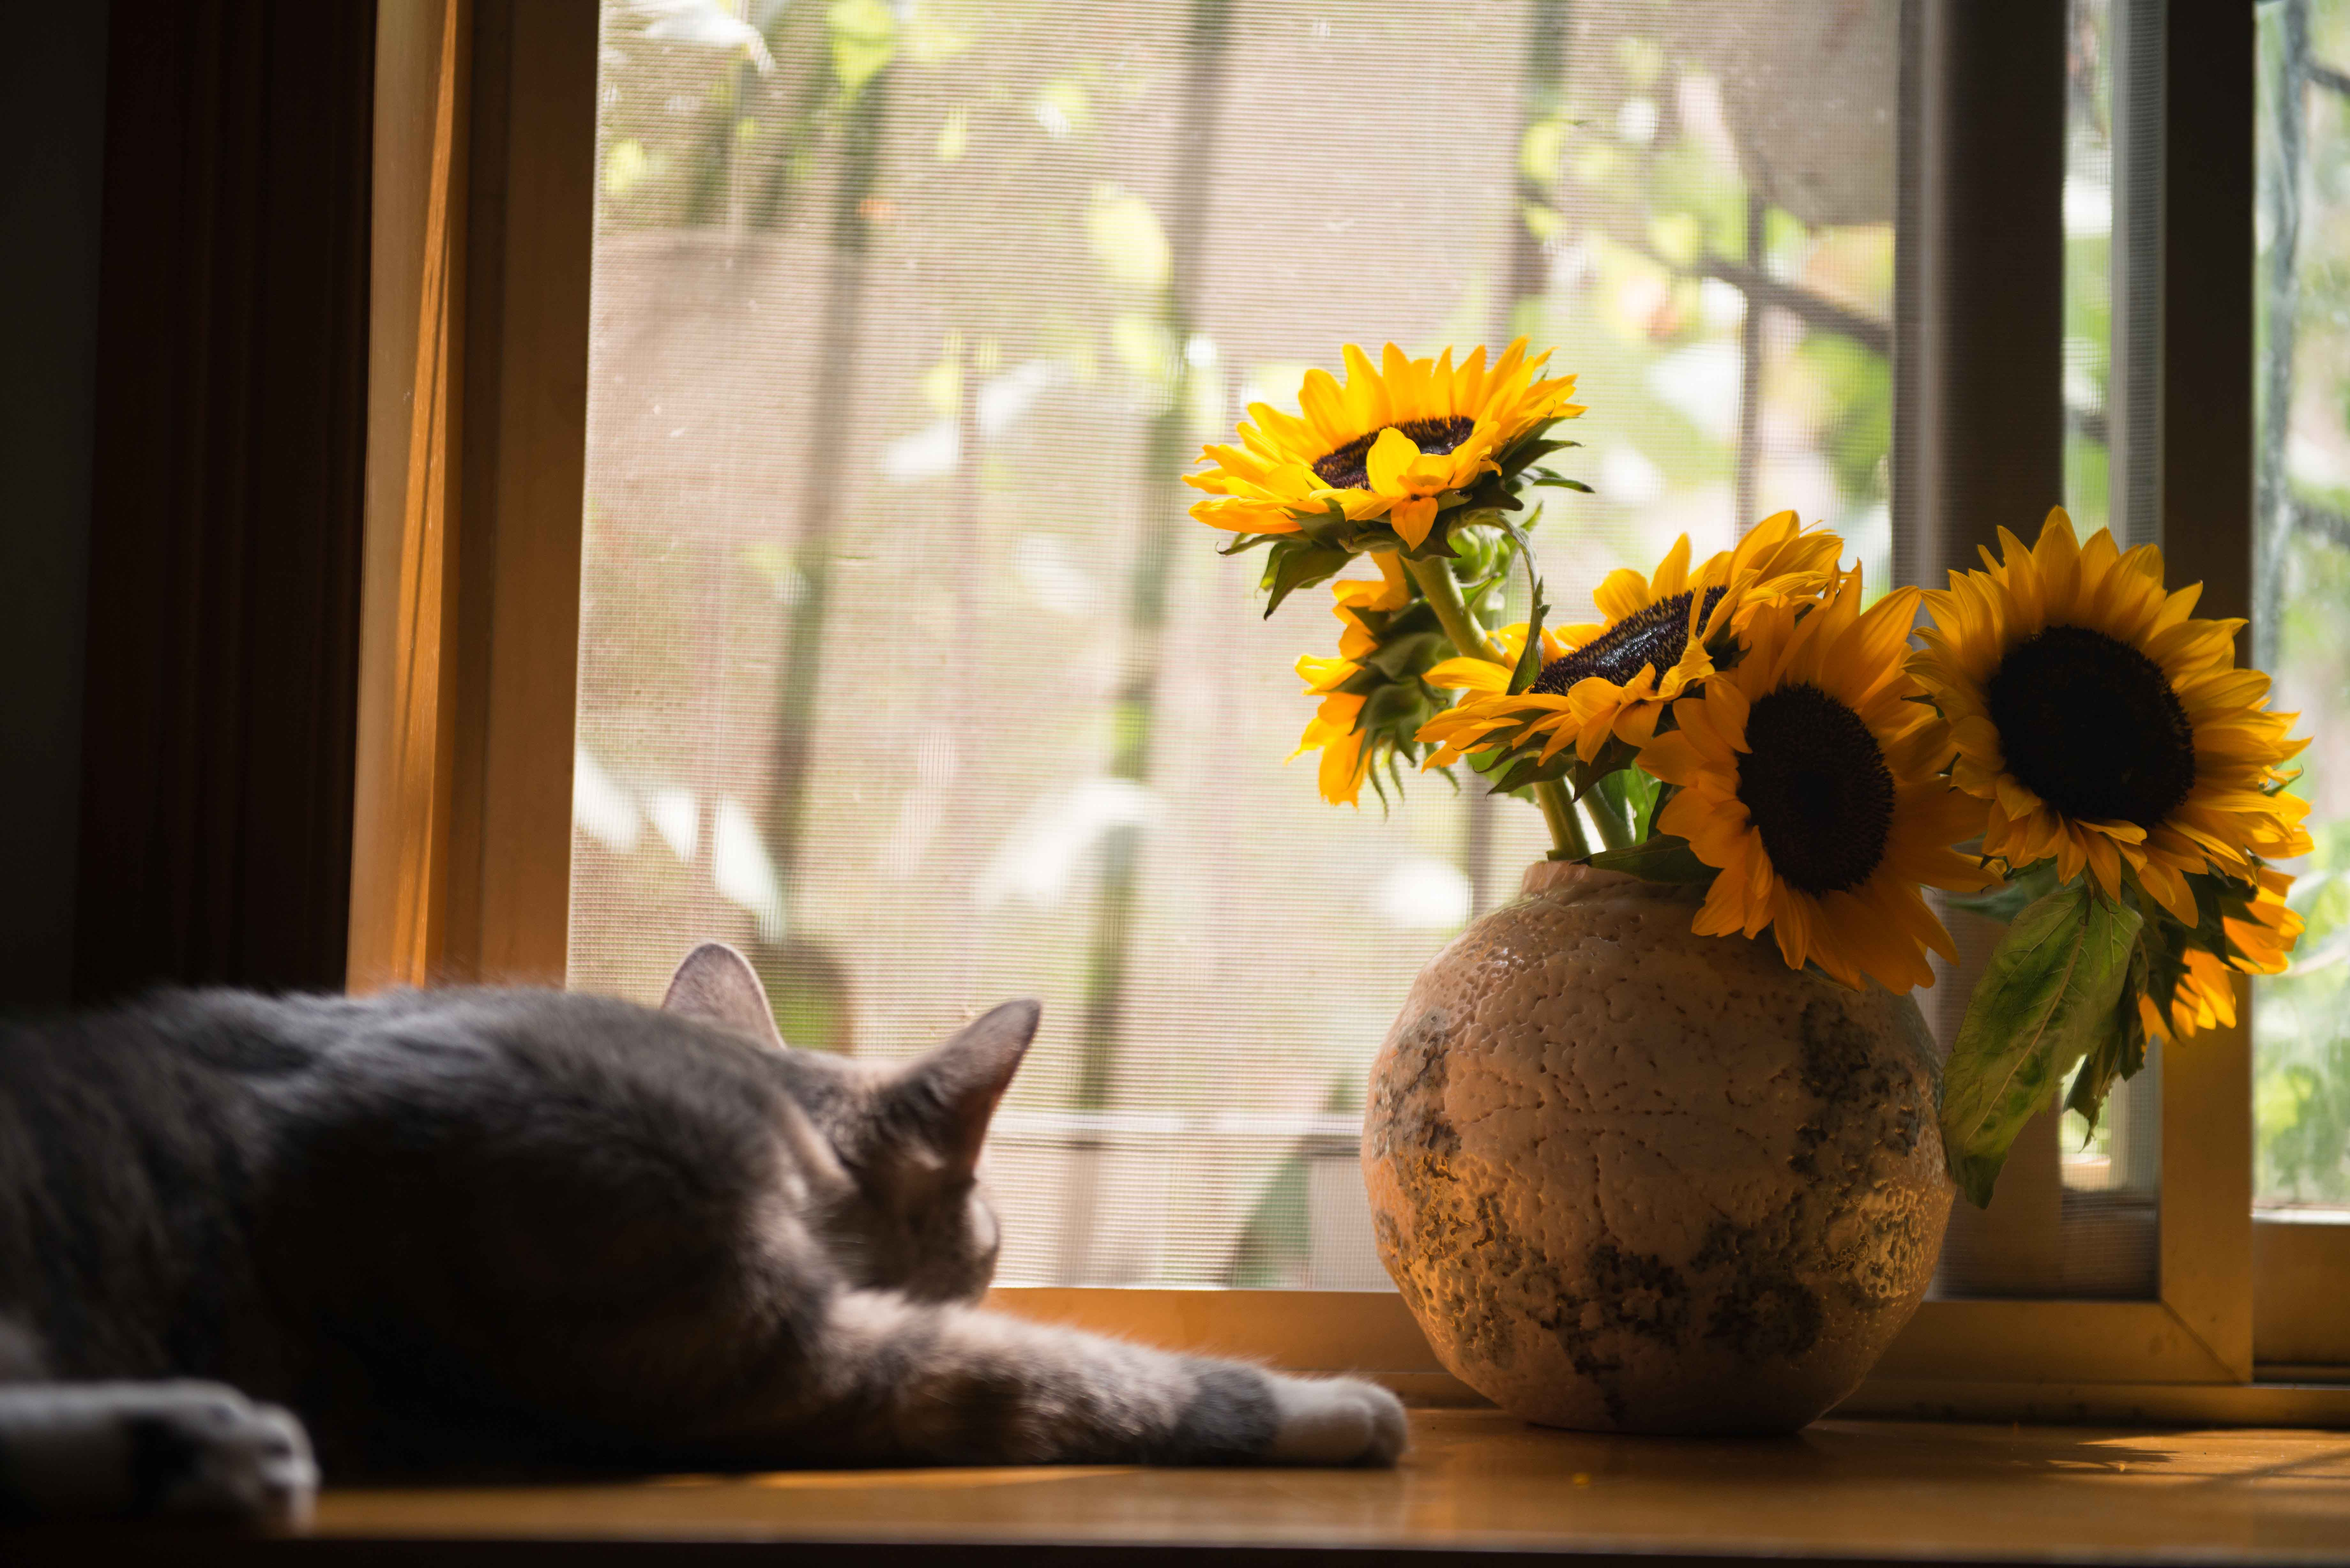 Cute Fall Wallpapers Pinterest Sunflowers In A Vase 183 Free Stock Photo